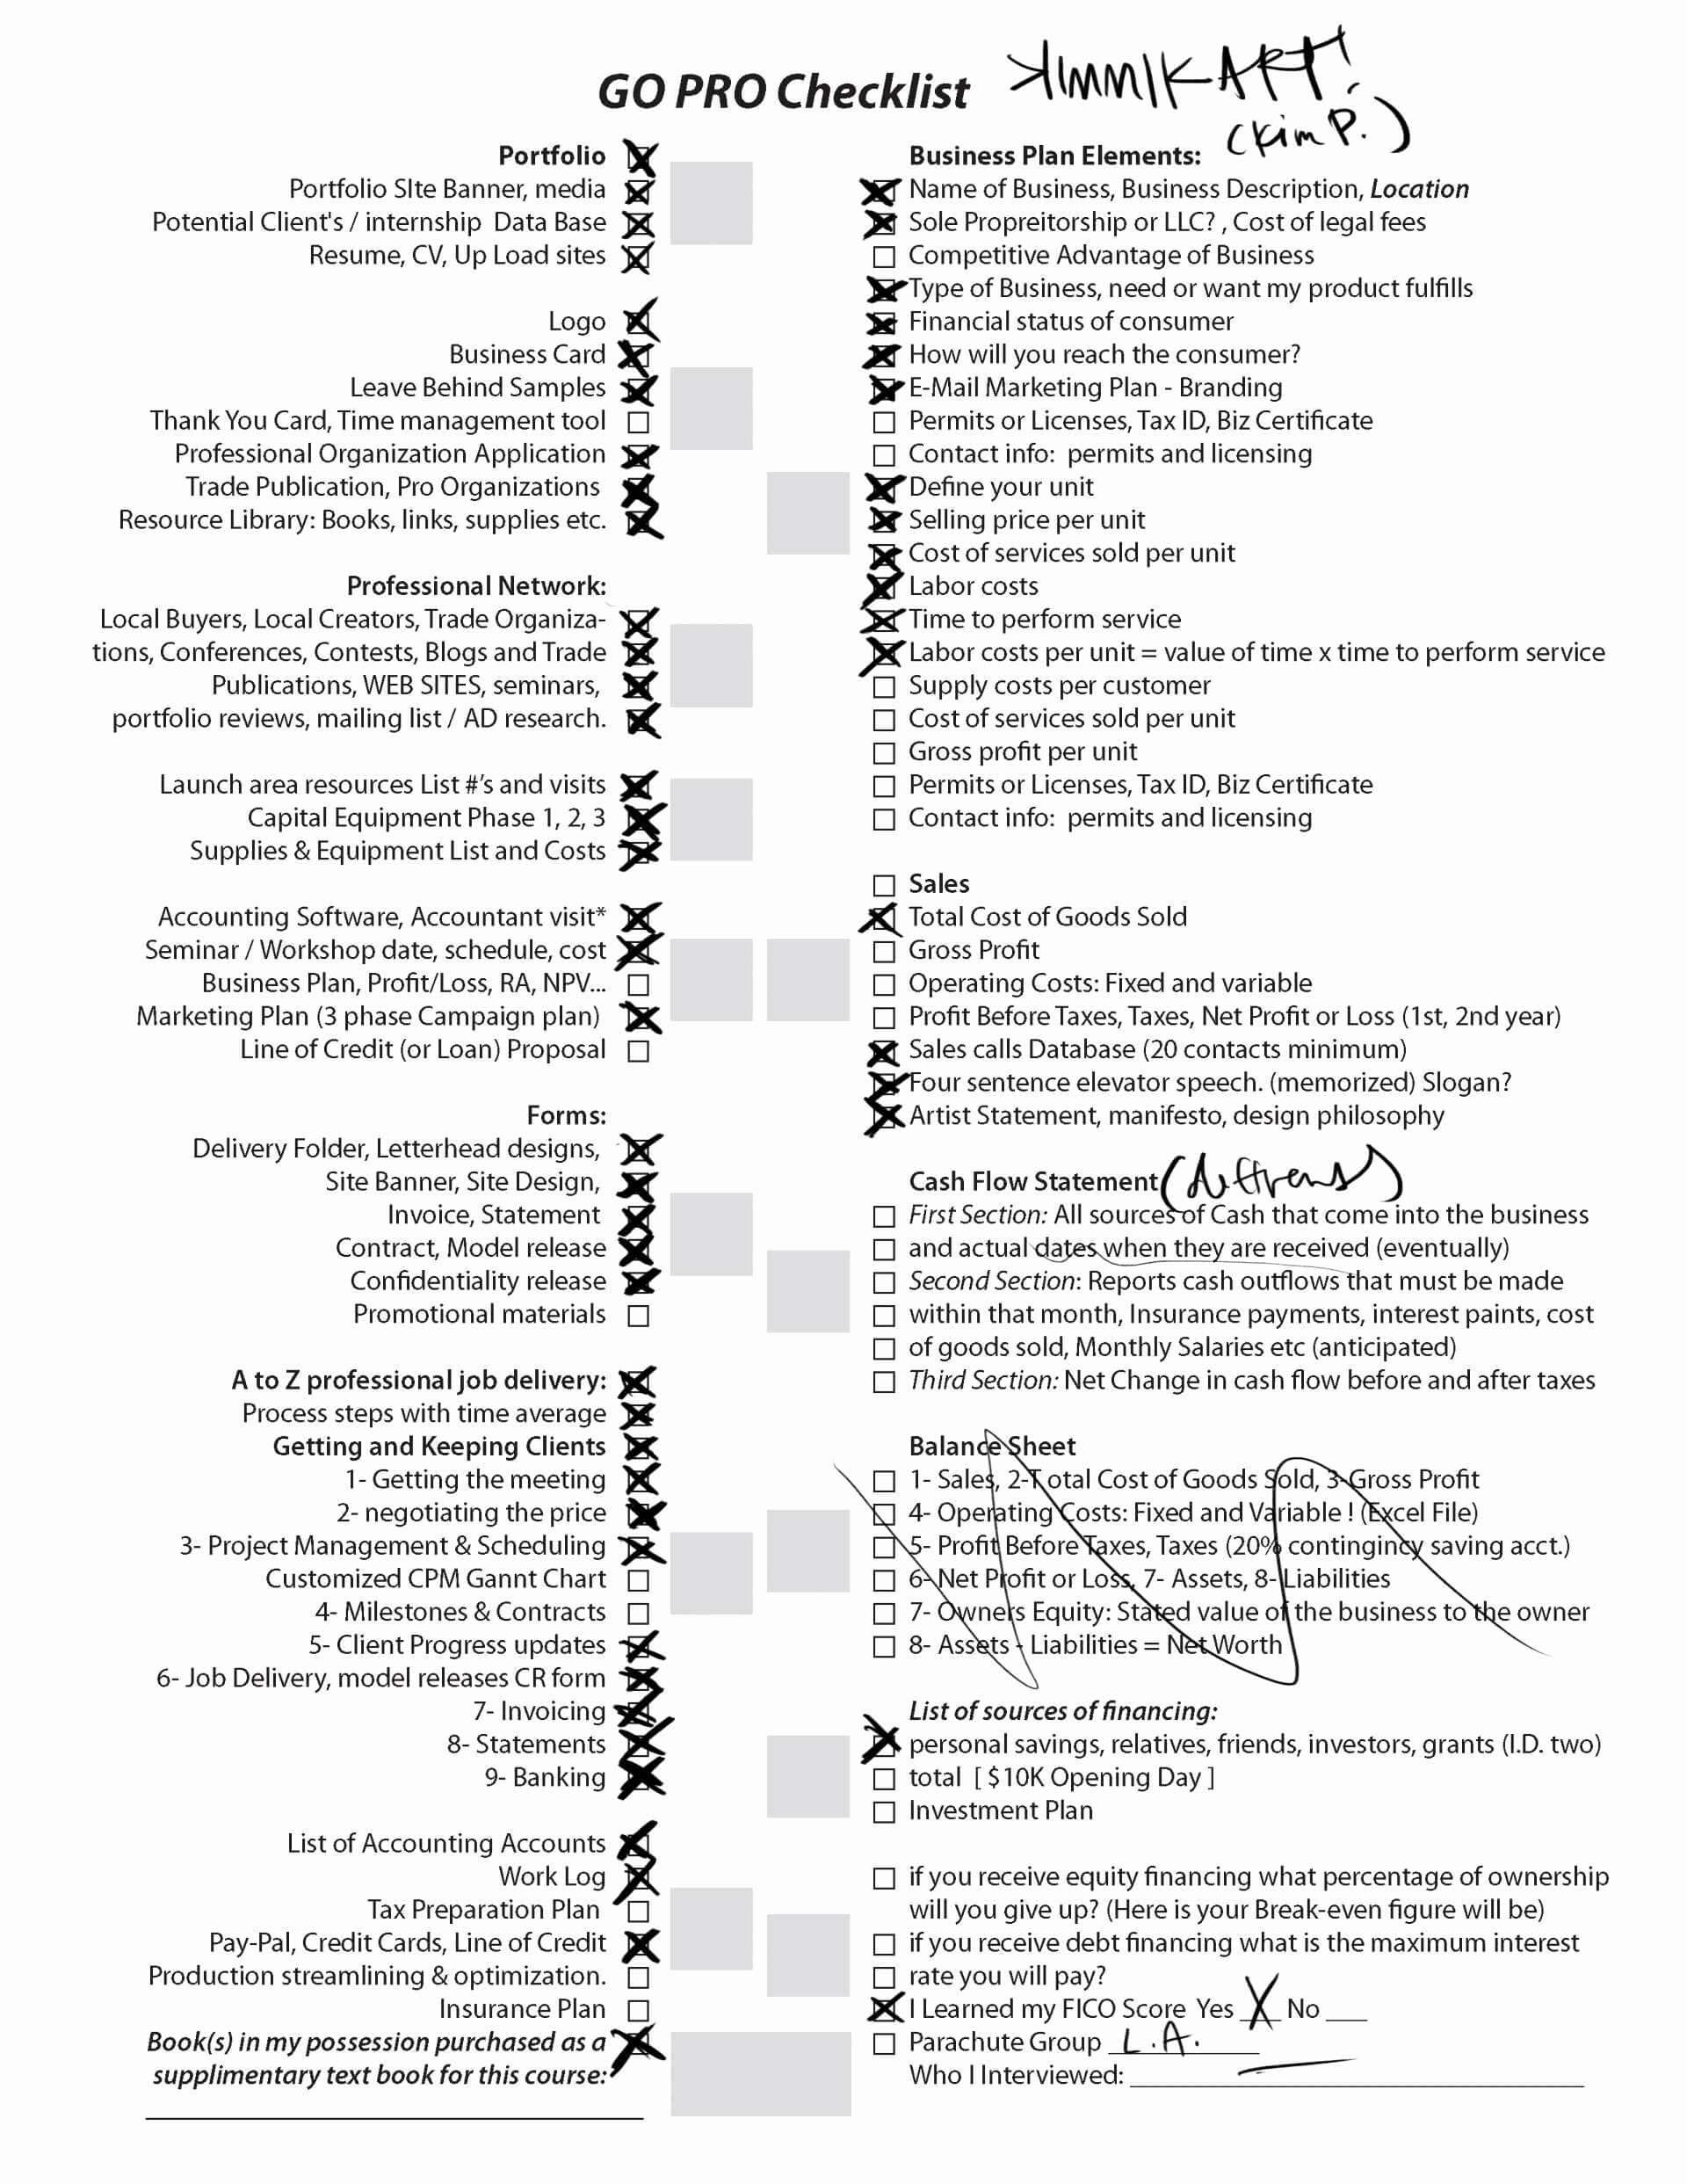 Business Trip Report Template Word – Caquetapositivo Inside Sales Trip Report Template Word